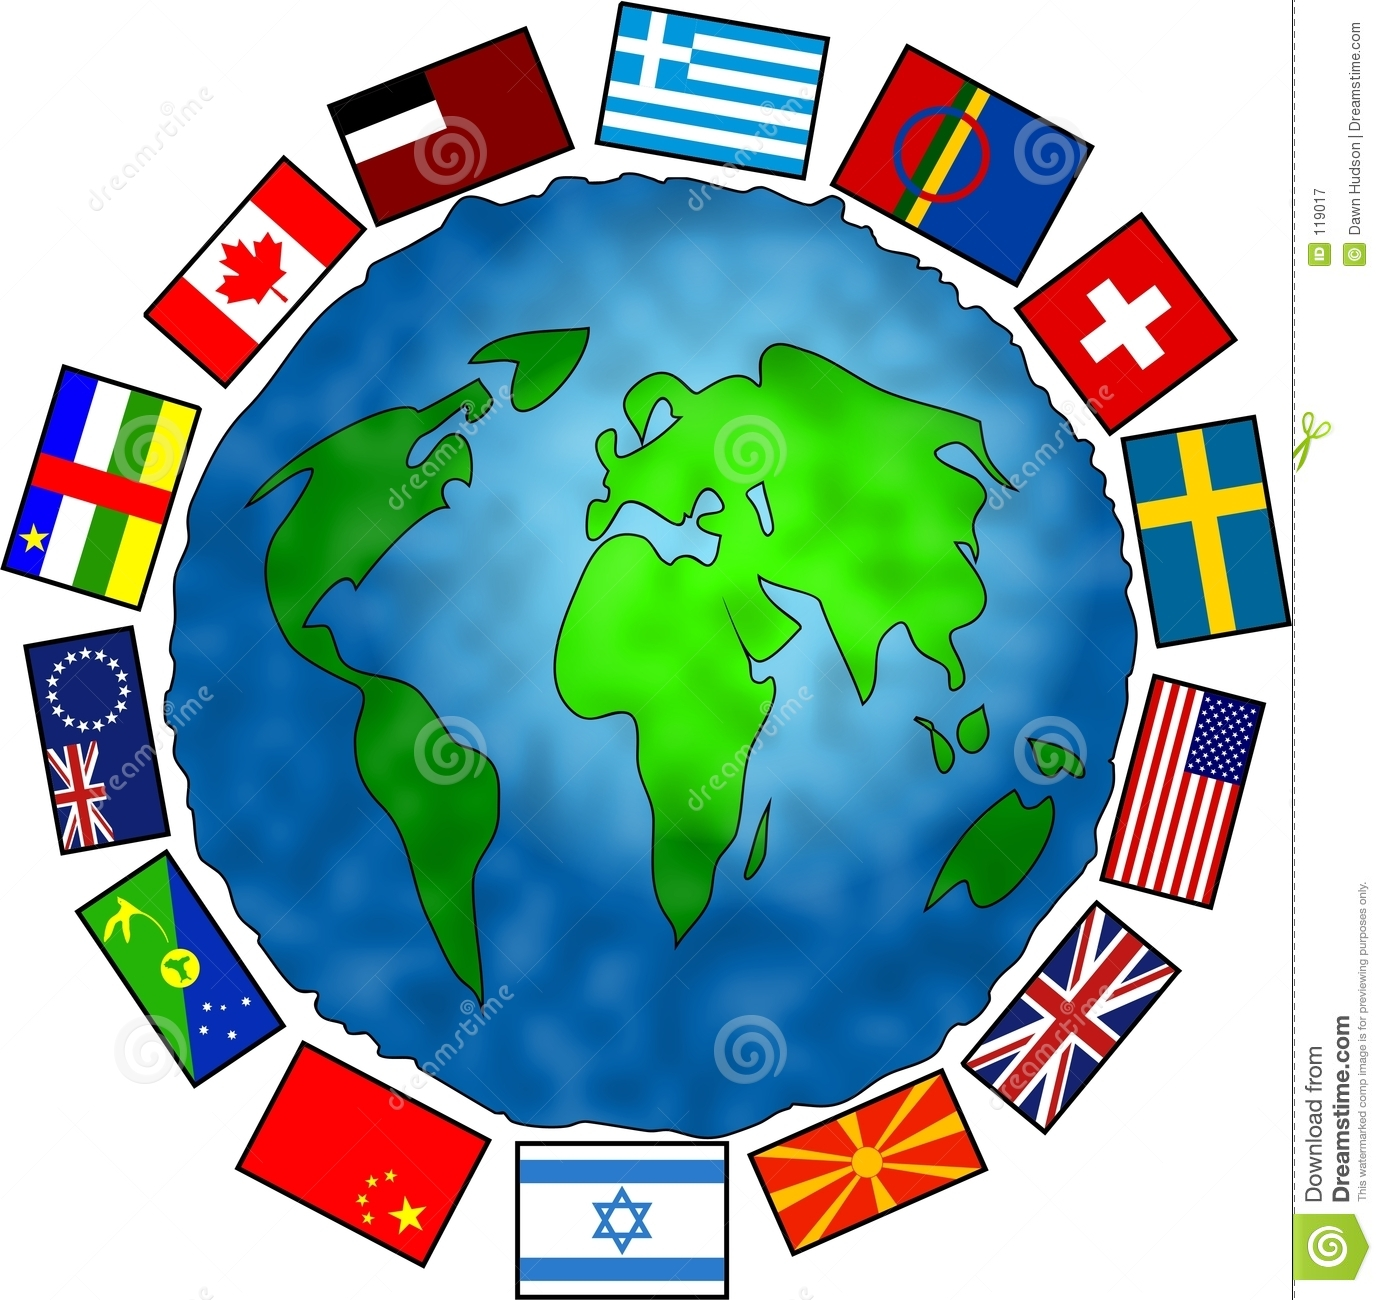 Flag Planet stock illustration. Illustration of conceptual ...